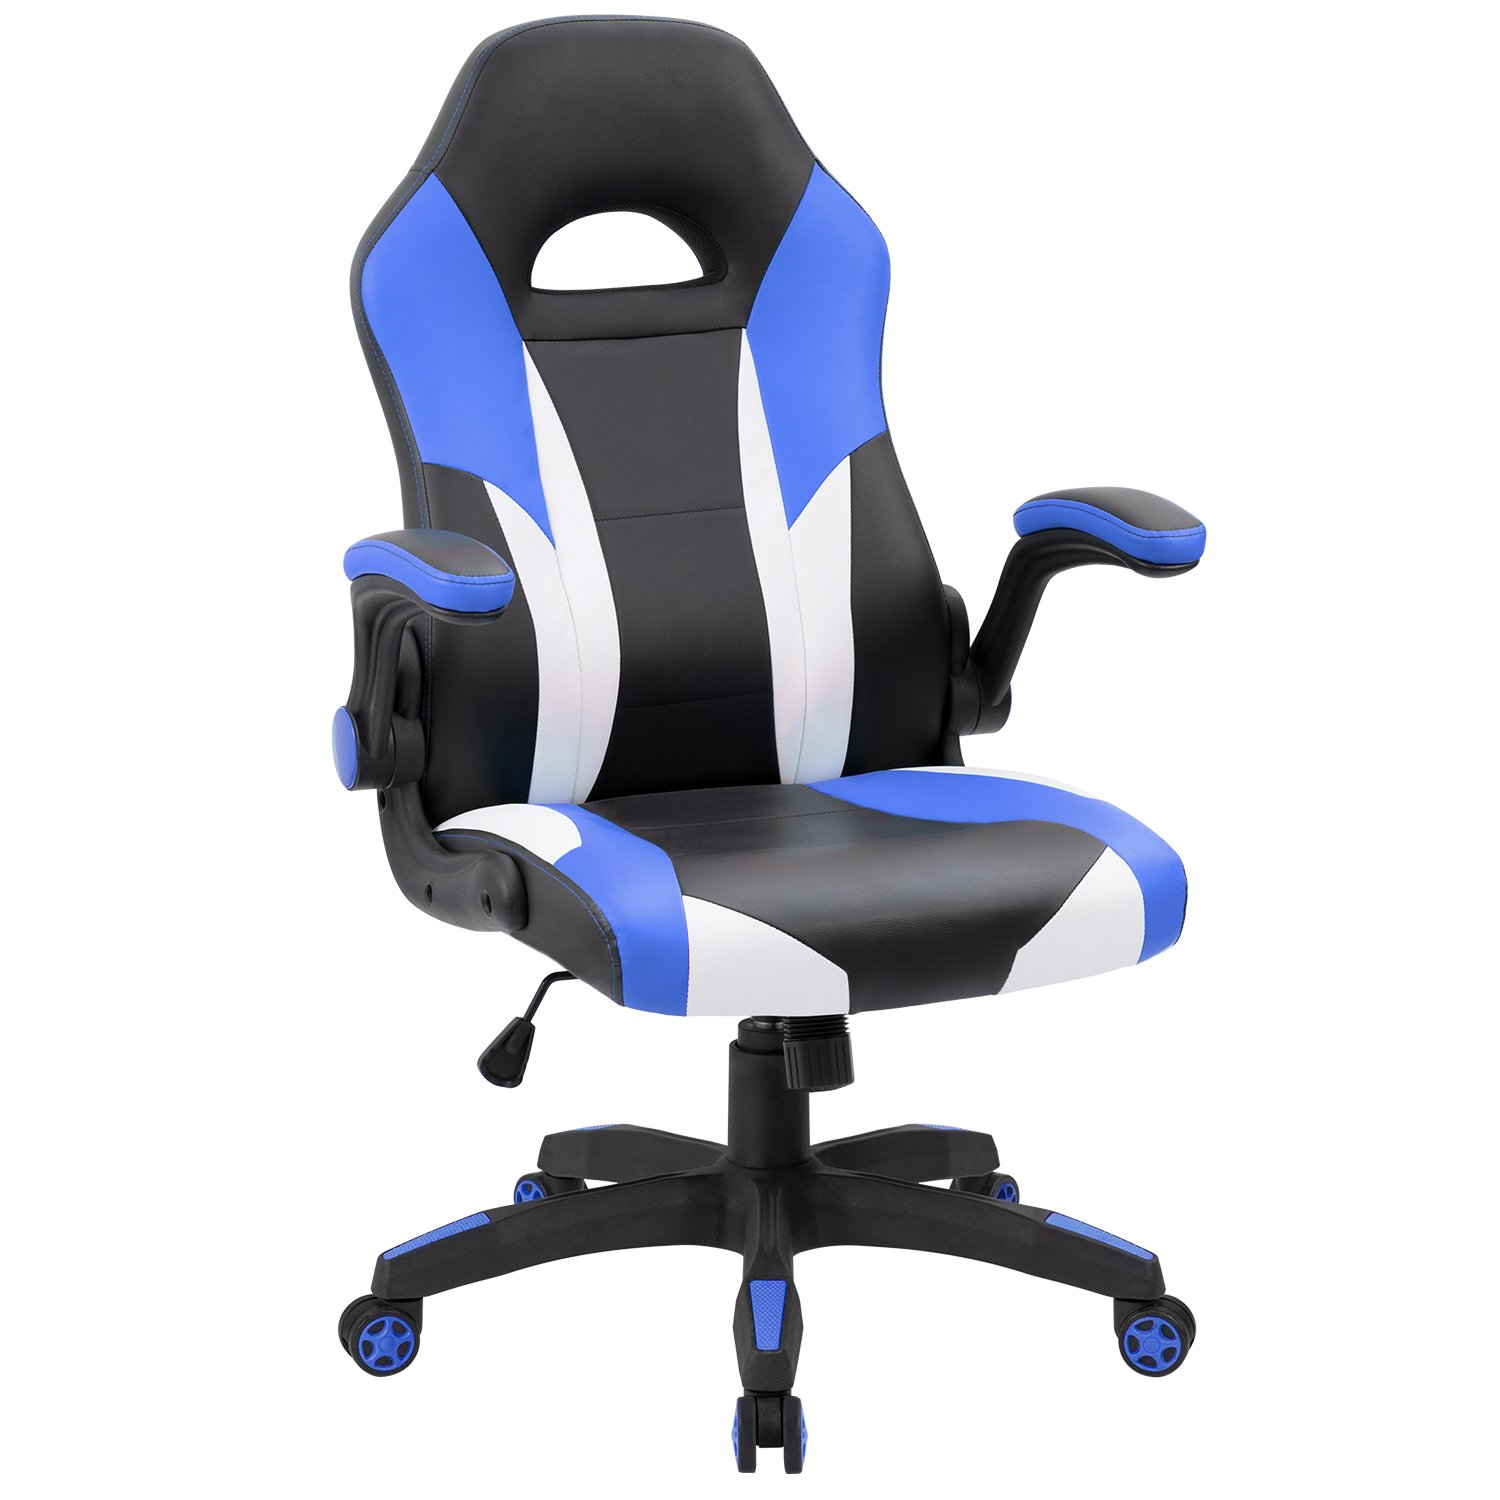 JUMMICO Gaming Chair Leather Racing Computer Chair Ergonomic Adjustable Executive Office Chair High Back Bucket Seat Swivel Desk Chair with Flip-Up Armrest (Blue)